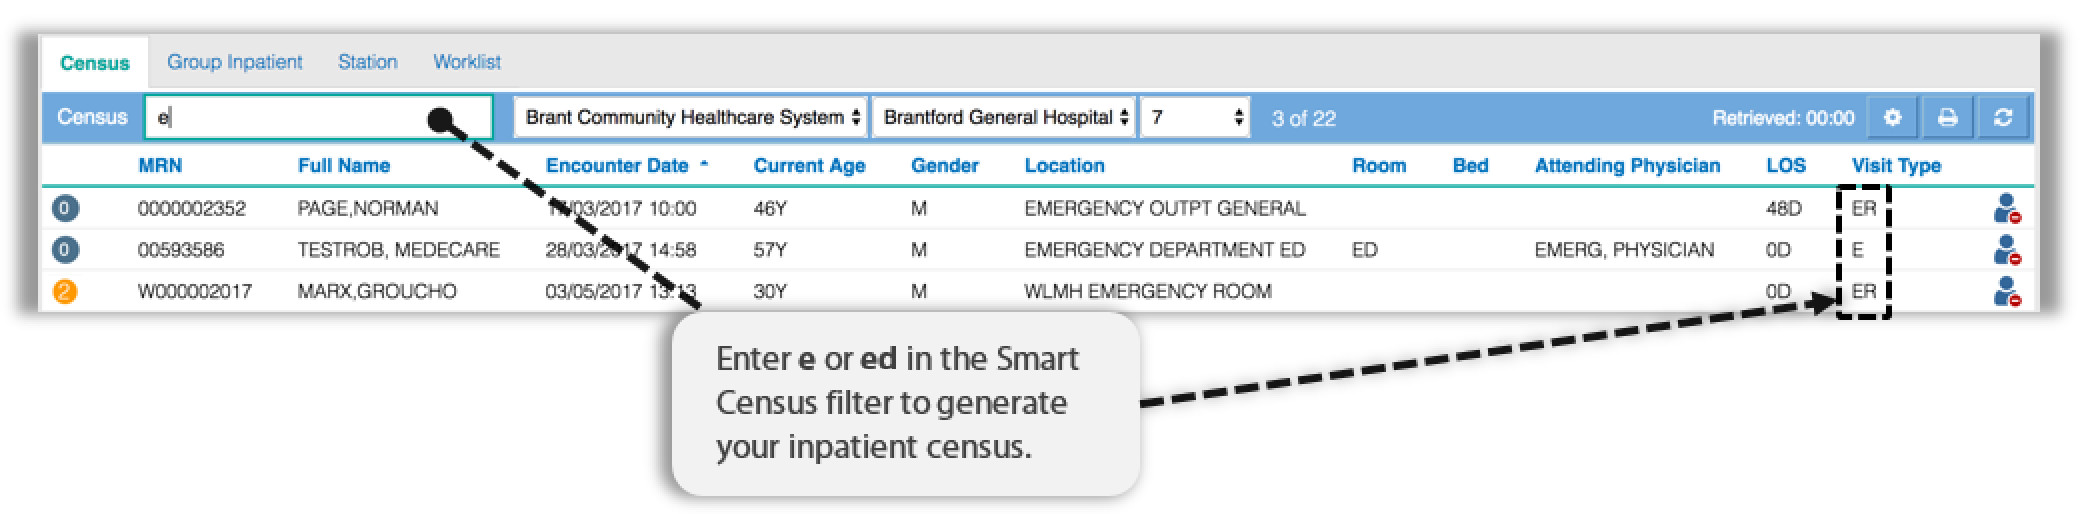 Image showing how to search for the visits type in the census list